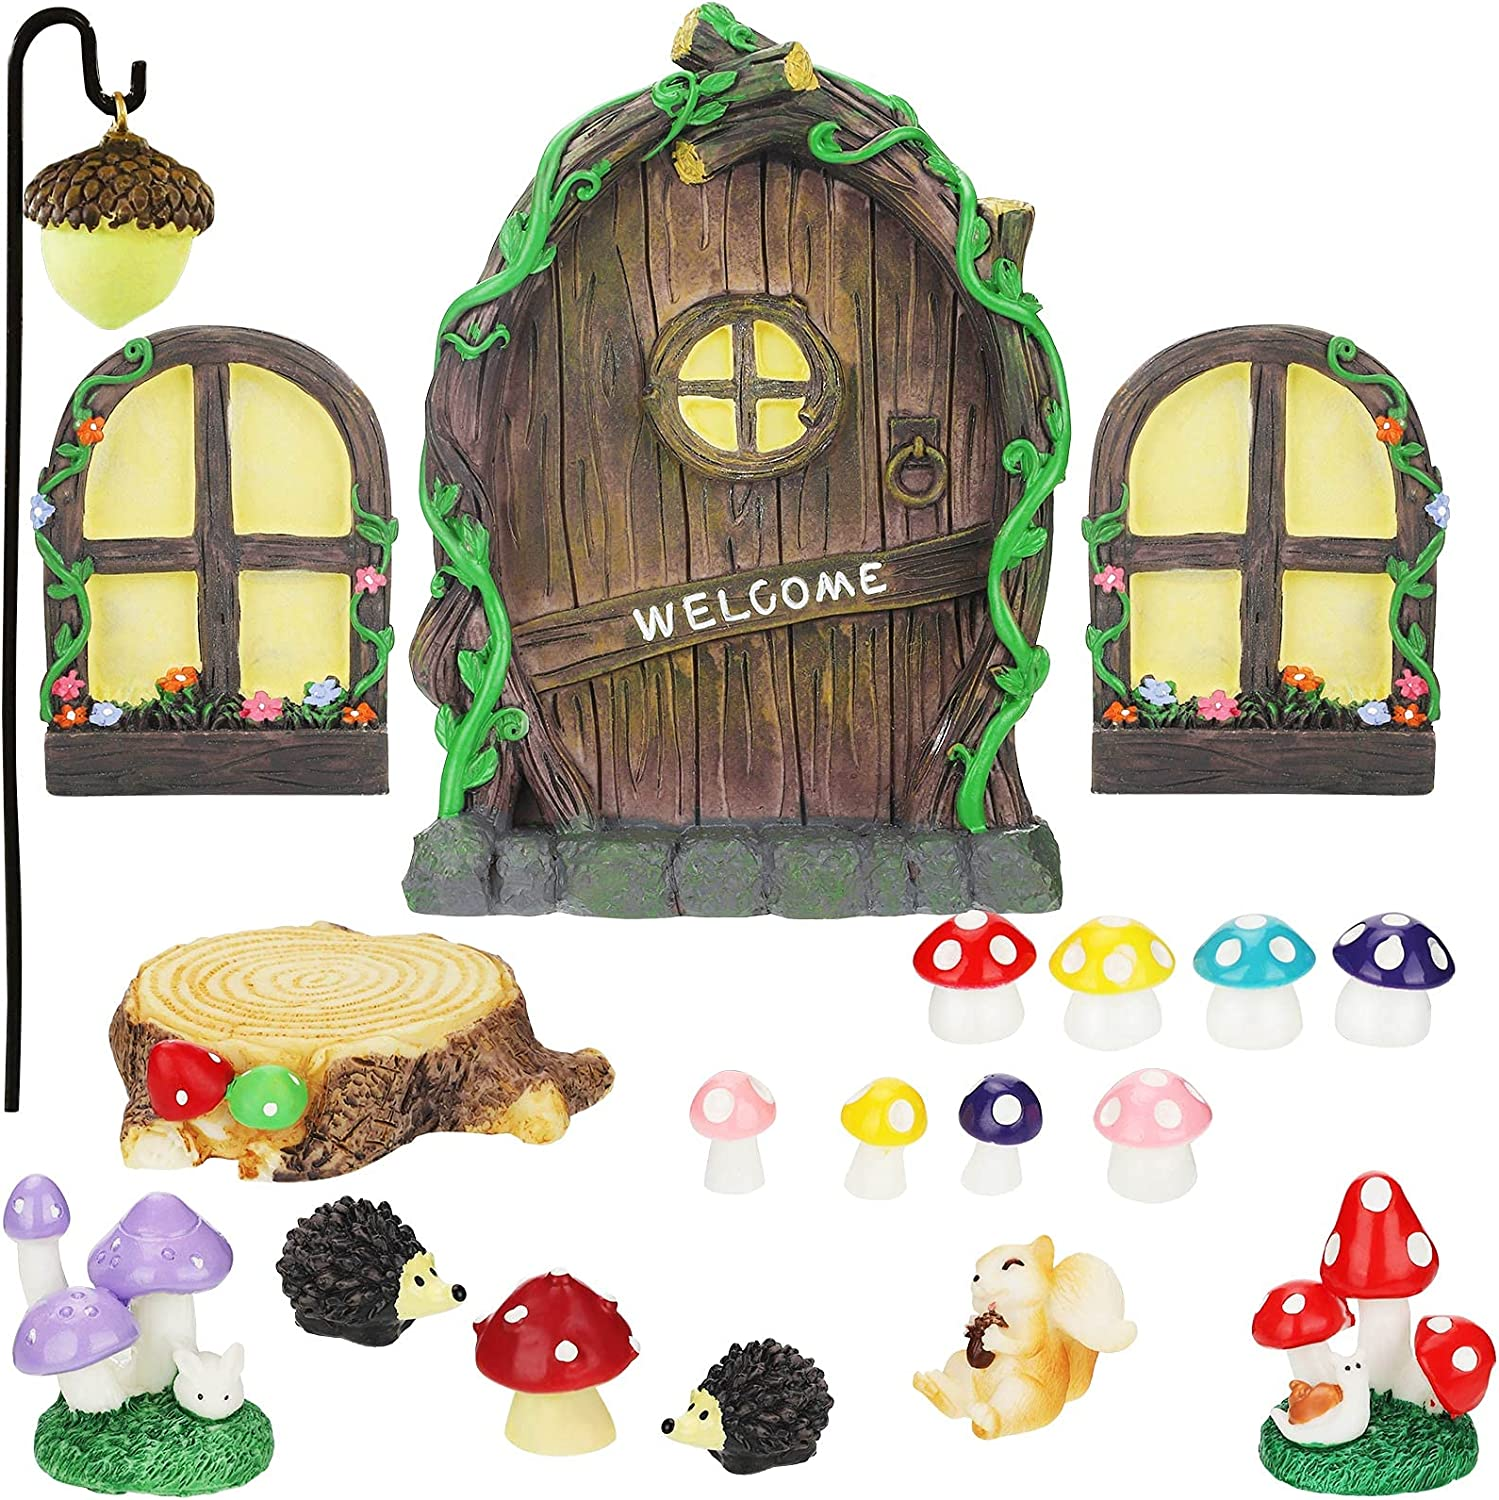 Jetec 21 Pieces Fairy Door and Window, Trees with 2 Window and Light Yard Sculpture Decoration for DIY Micro Landscape Ornament Kid Room, Wall and Tree Outdoor Miniature Fairy Garden Accessories